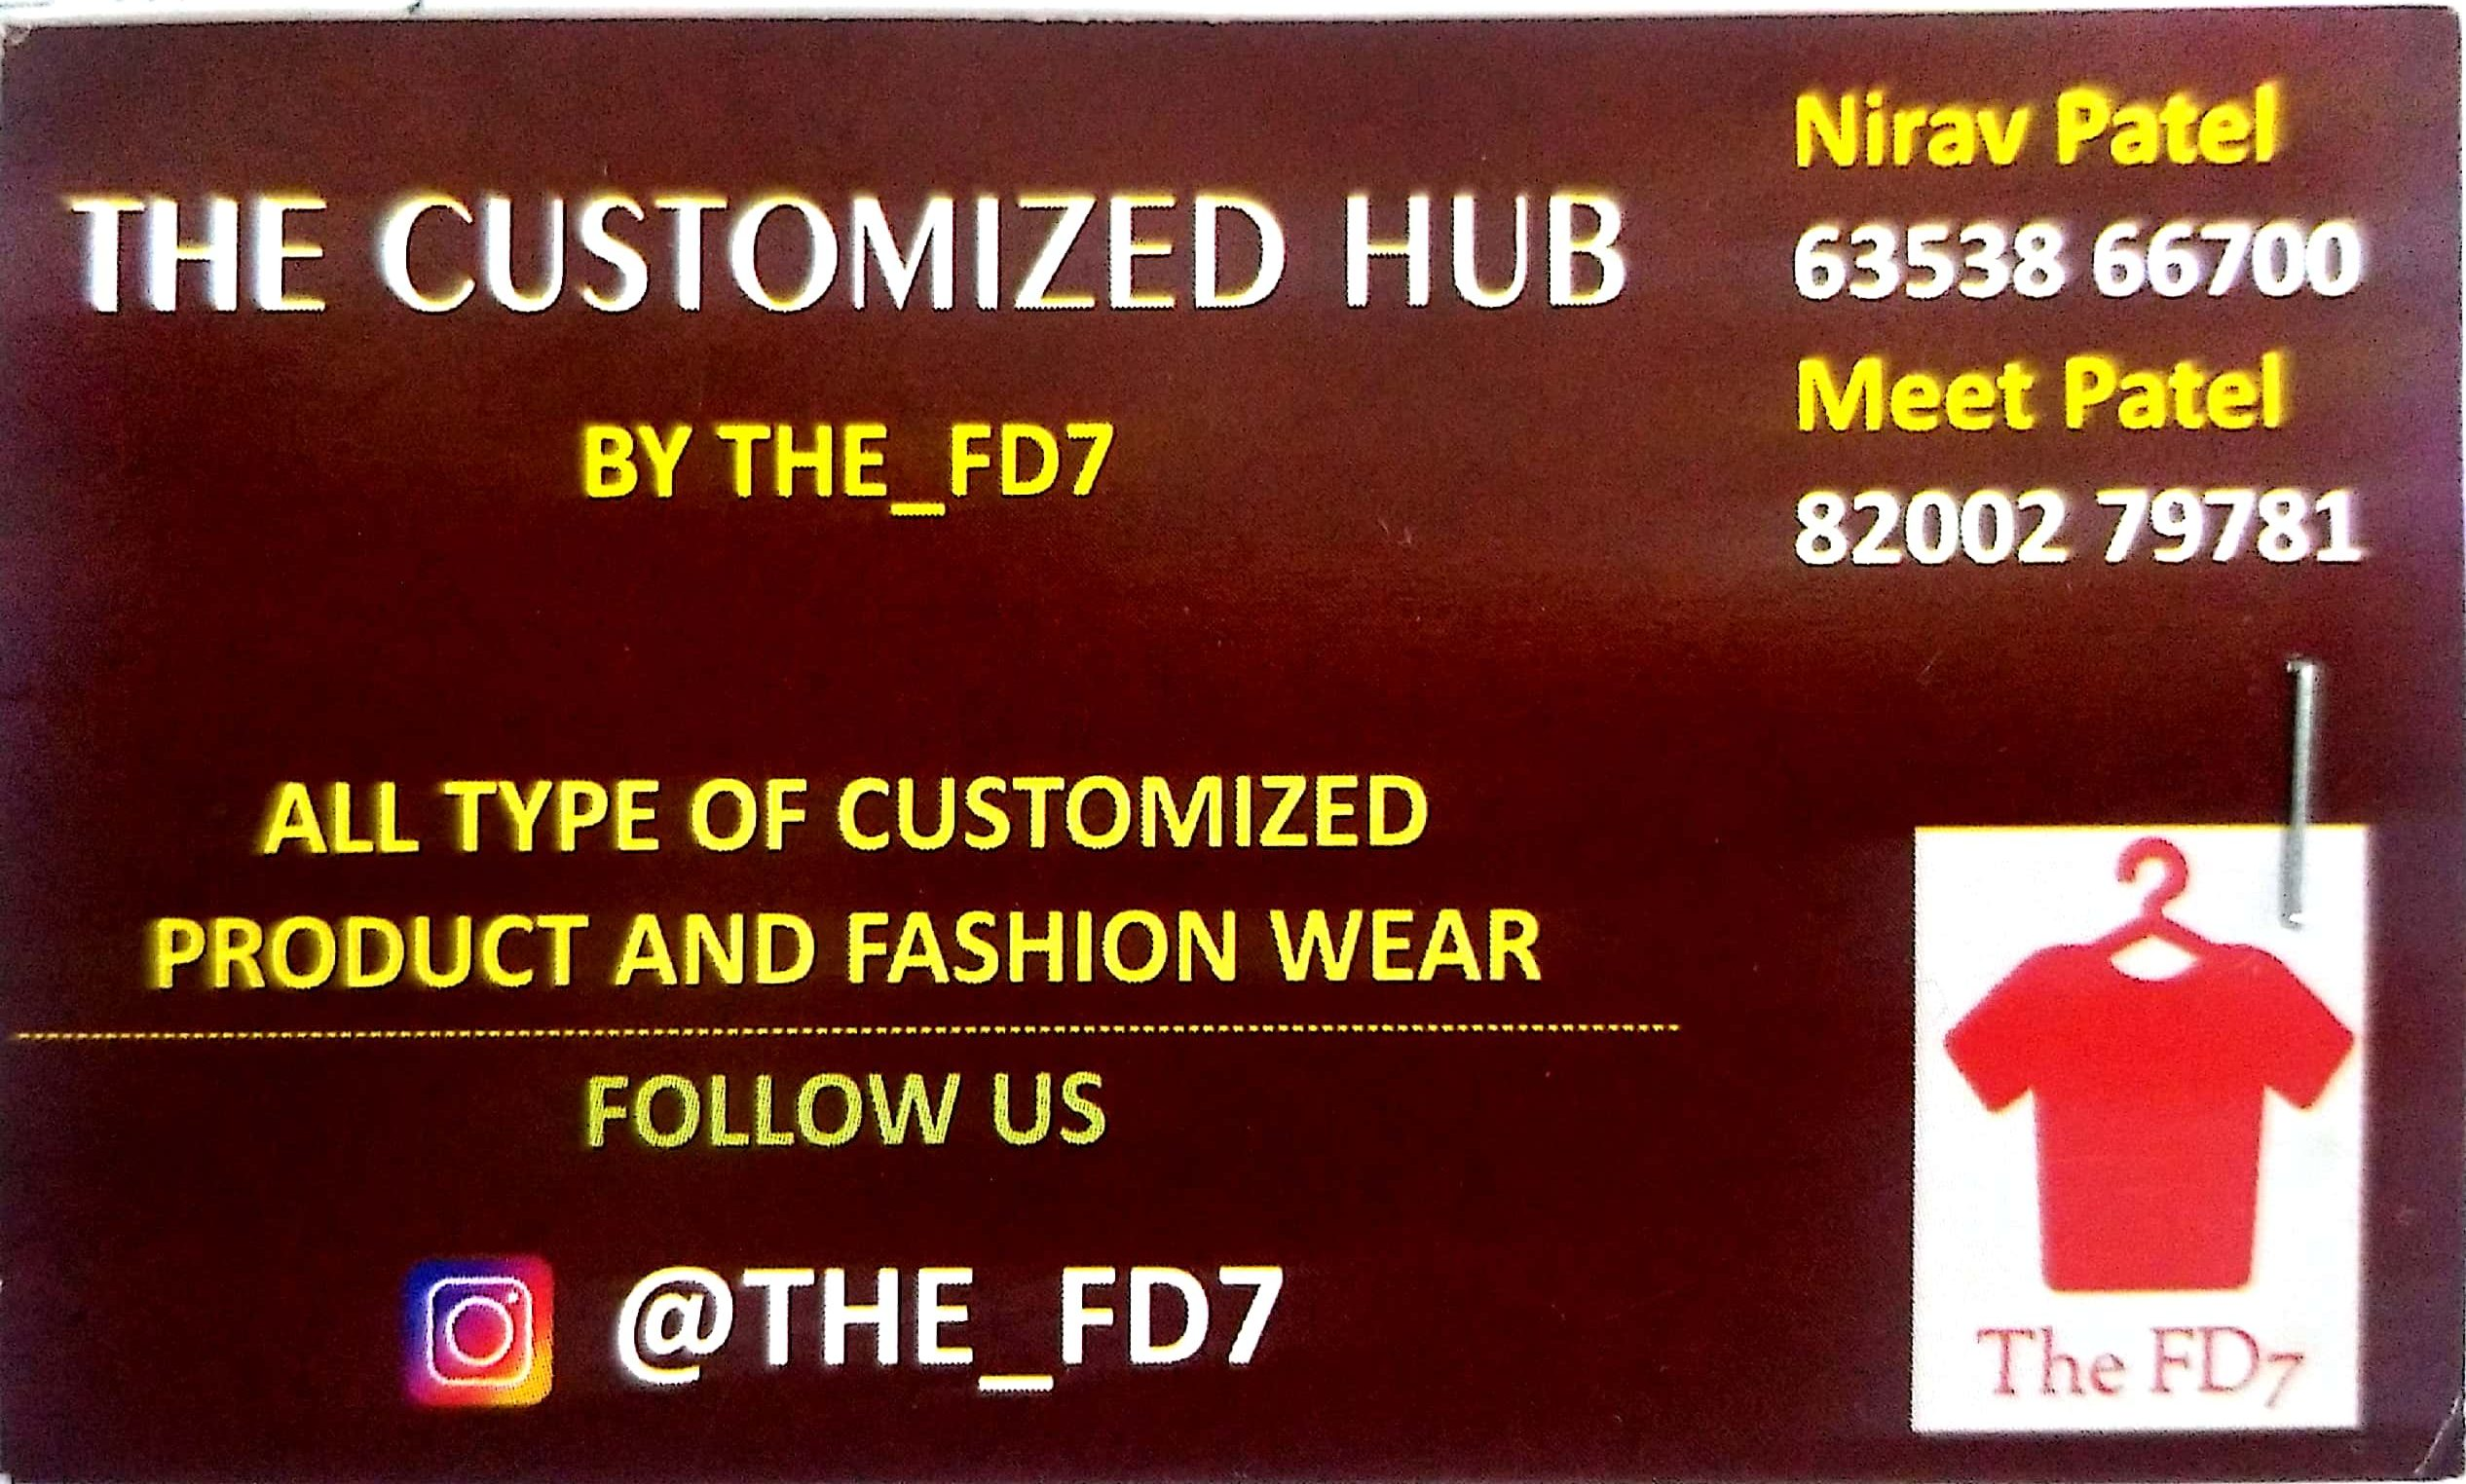 The Customized Hub (The_FD7)